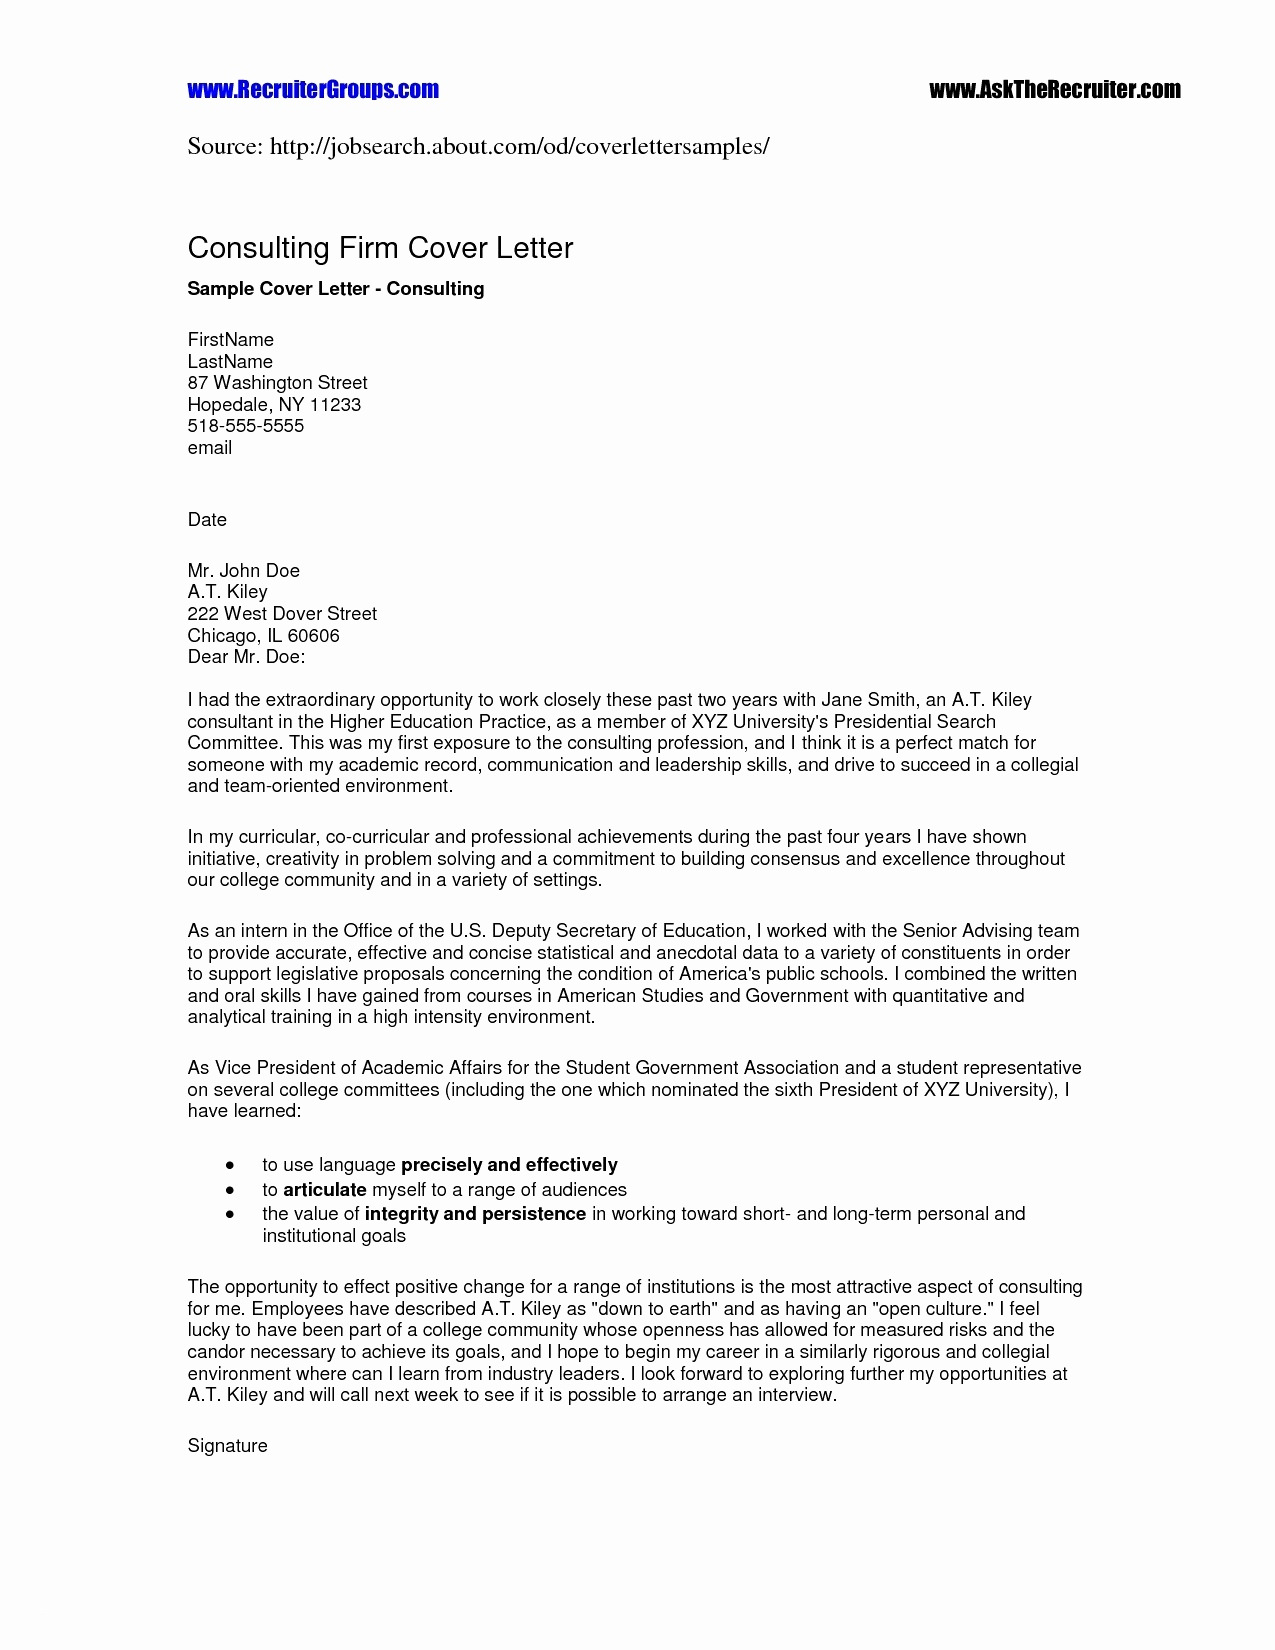 Creative Cover Letter Template Word Free - Free Teacher Resume Templates Inspirational Free Microsoft Word